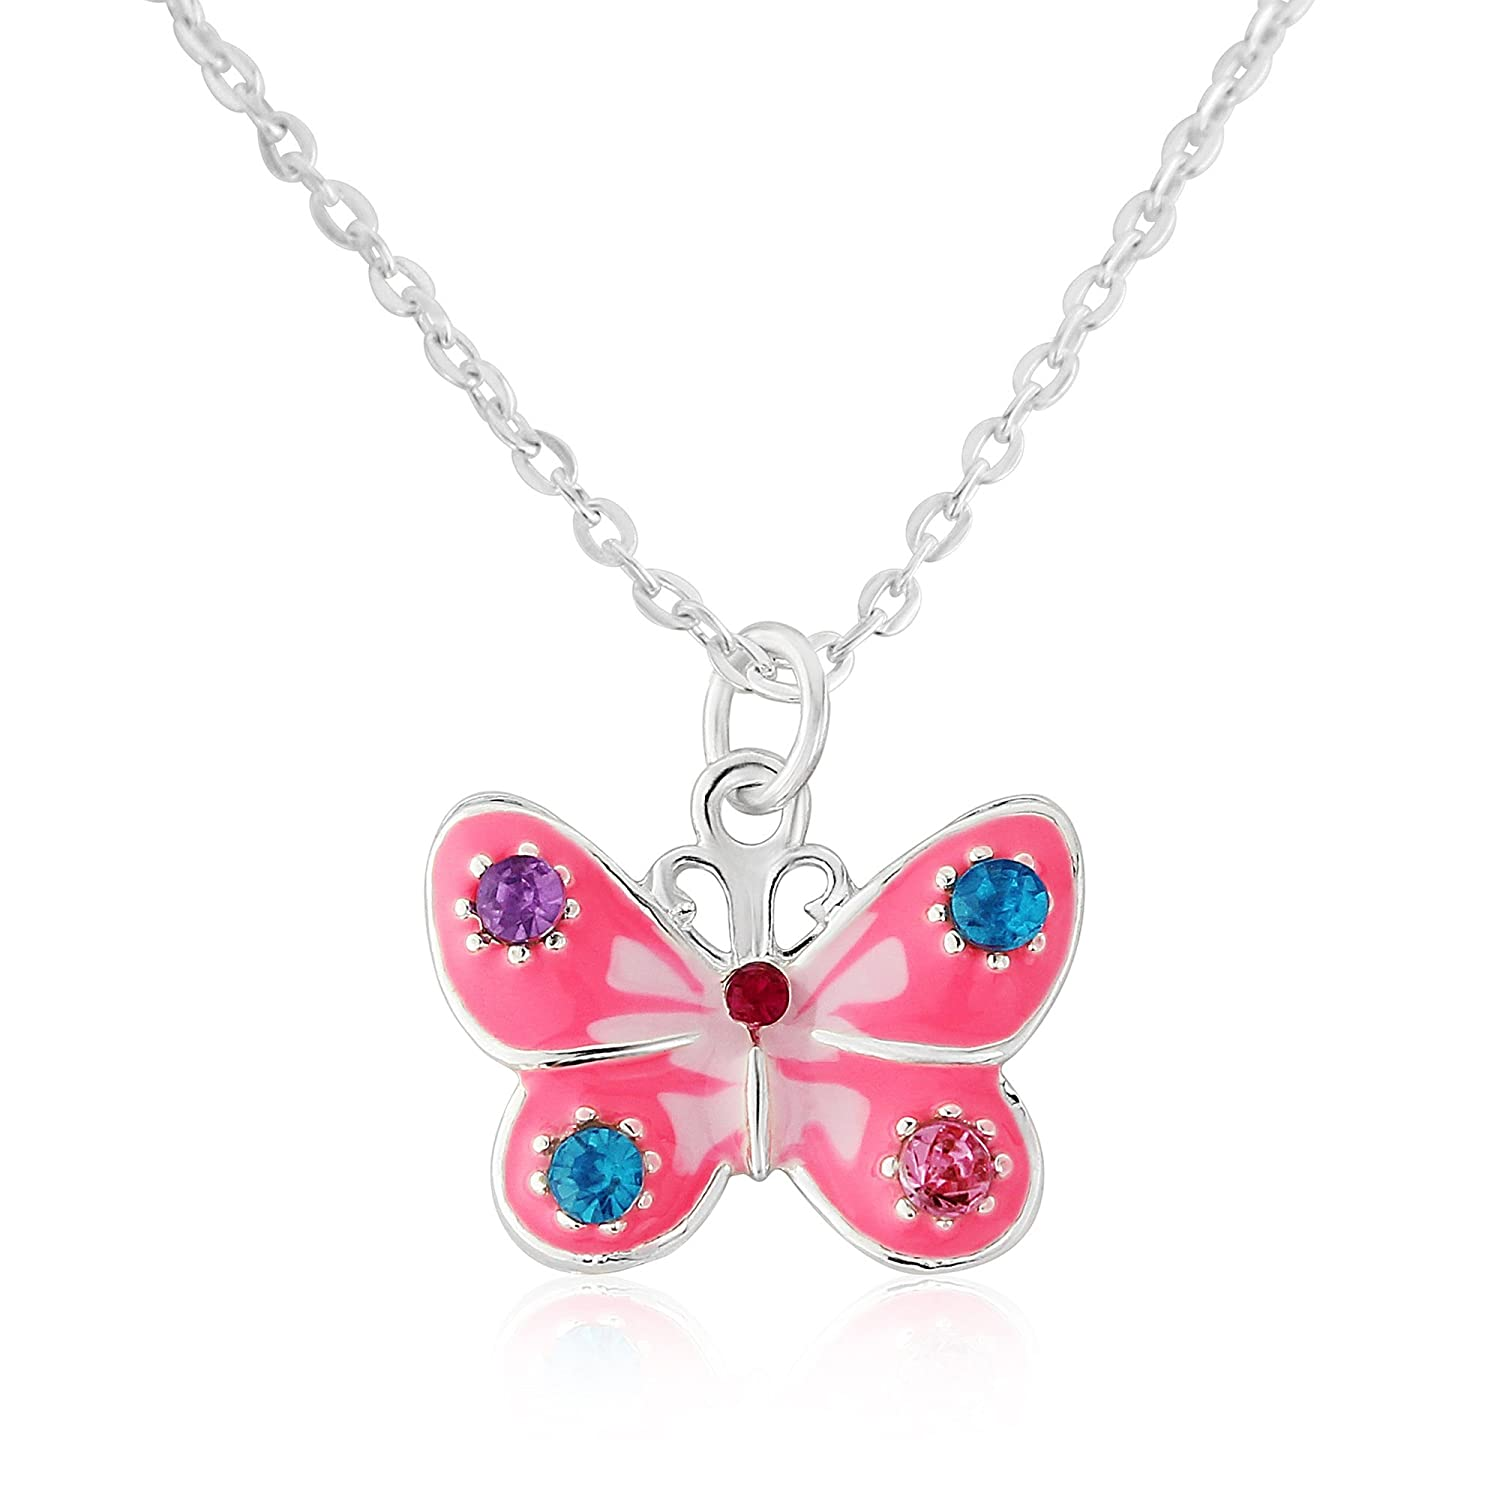 products vous fabuleux bomb fv necklace collections jewellery pink img daisy